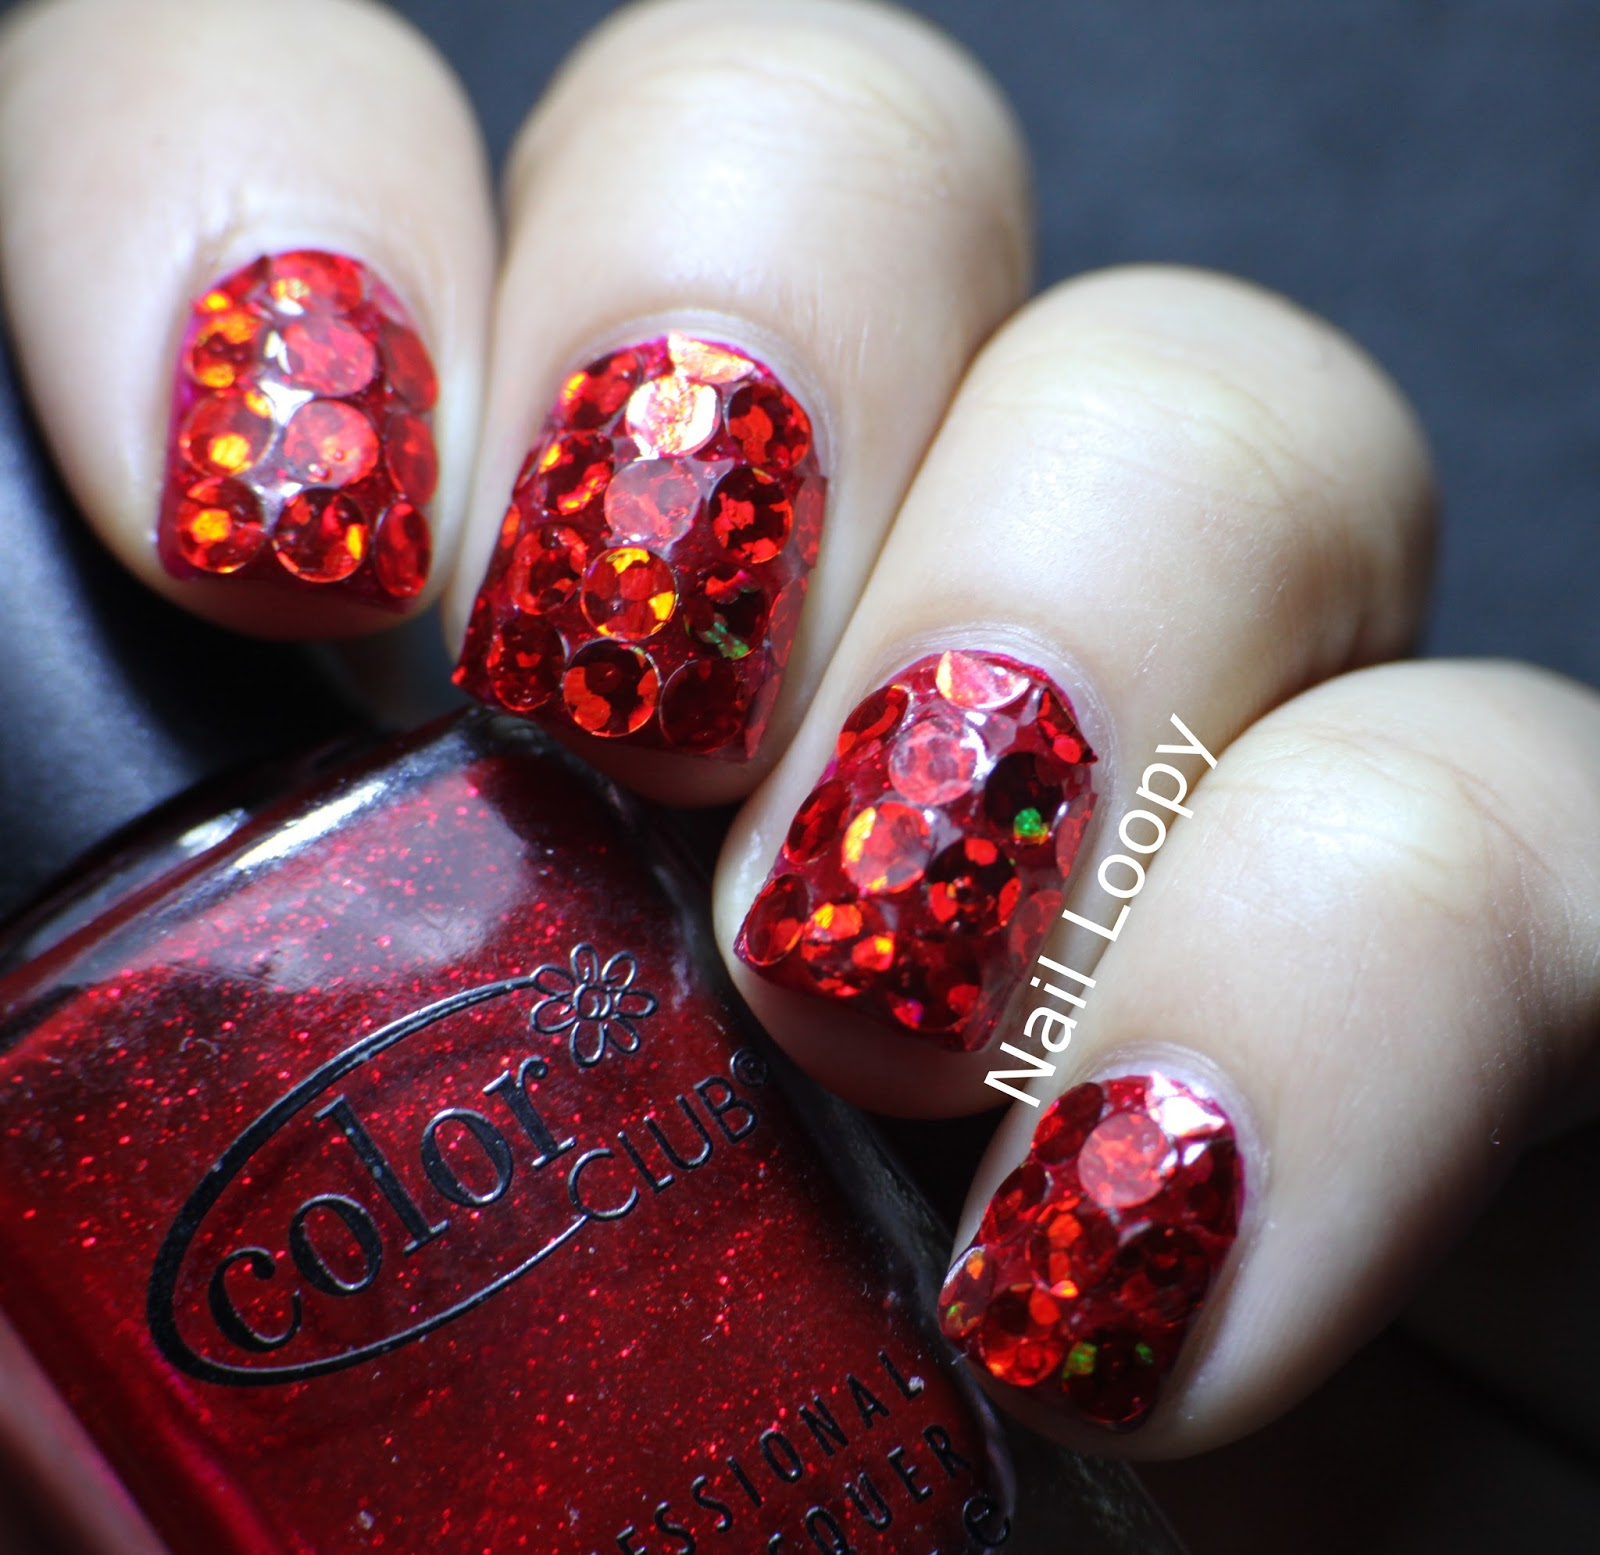 nail loopy: super hologrpahic & sparkly red glitter nails!